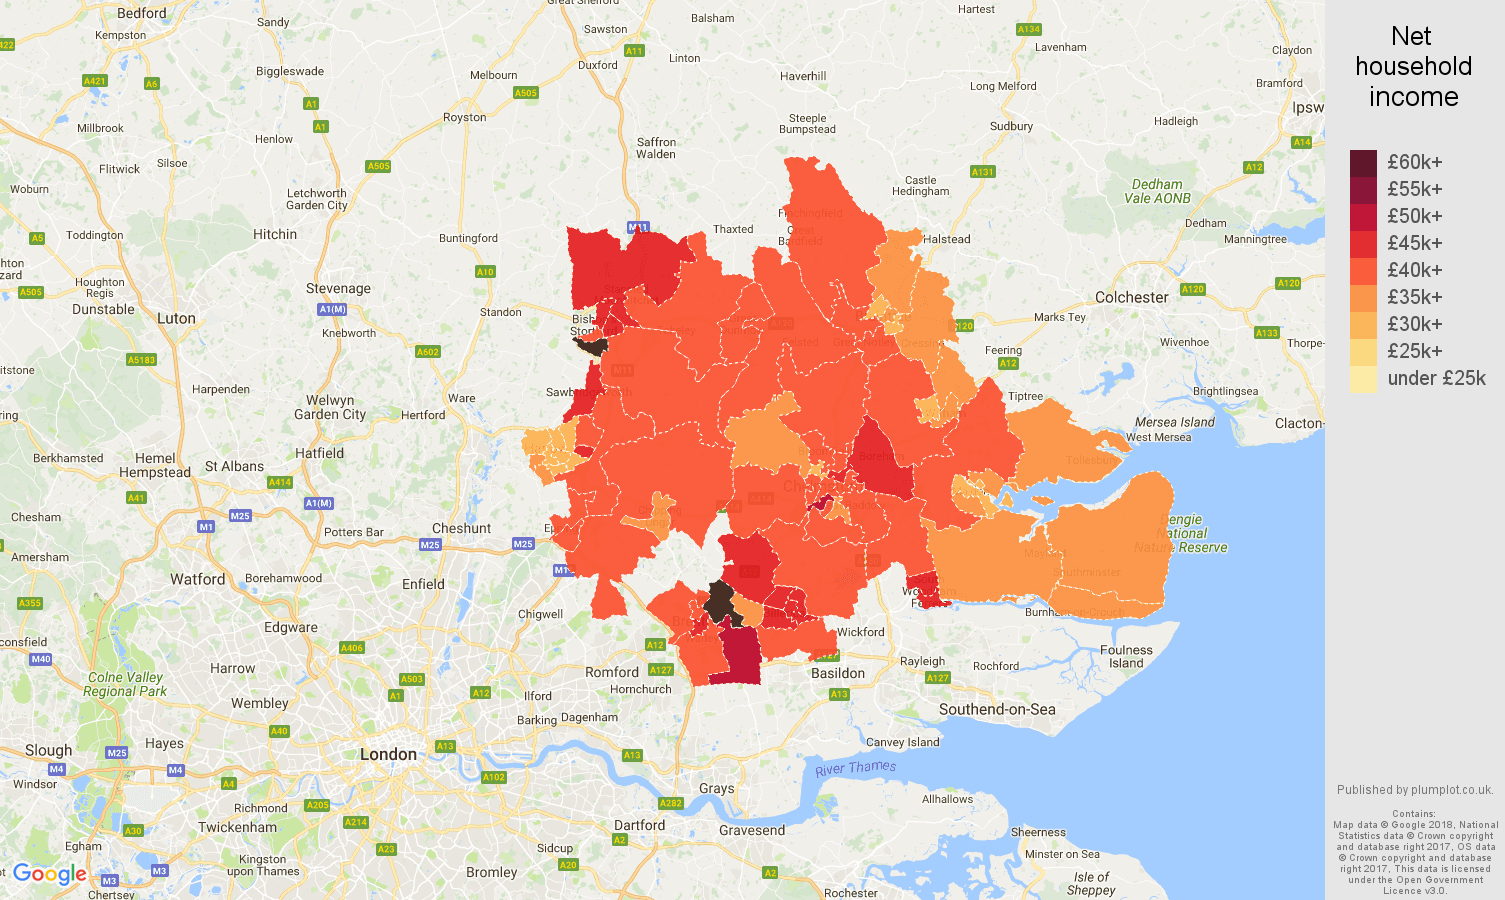 Chelmsford net household income map